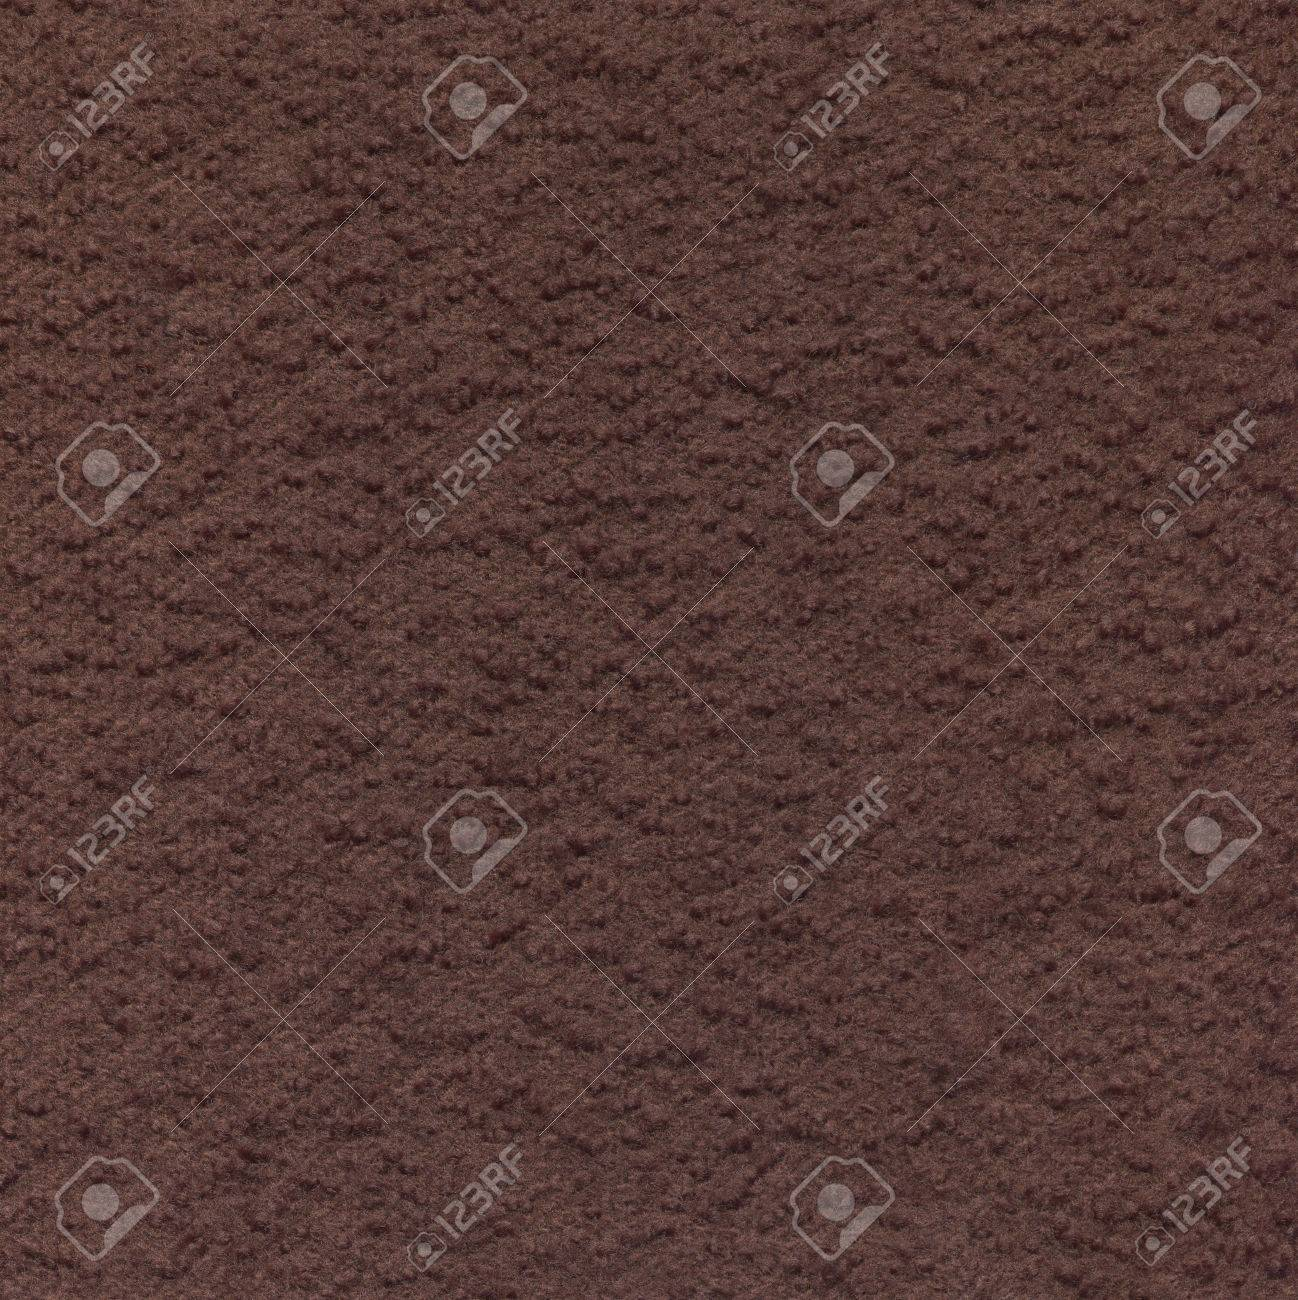 Brown wool fabric with a boucle texture. Decorative material for the background. - 55008914